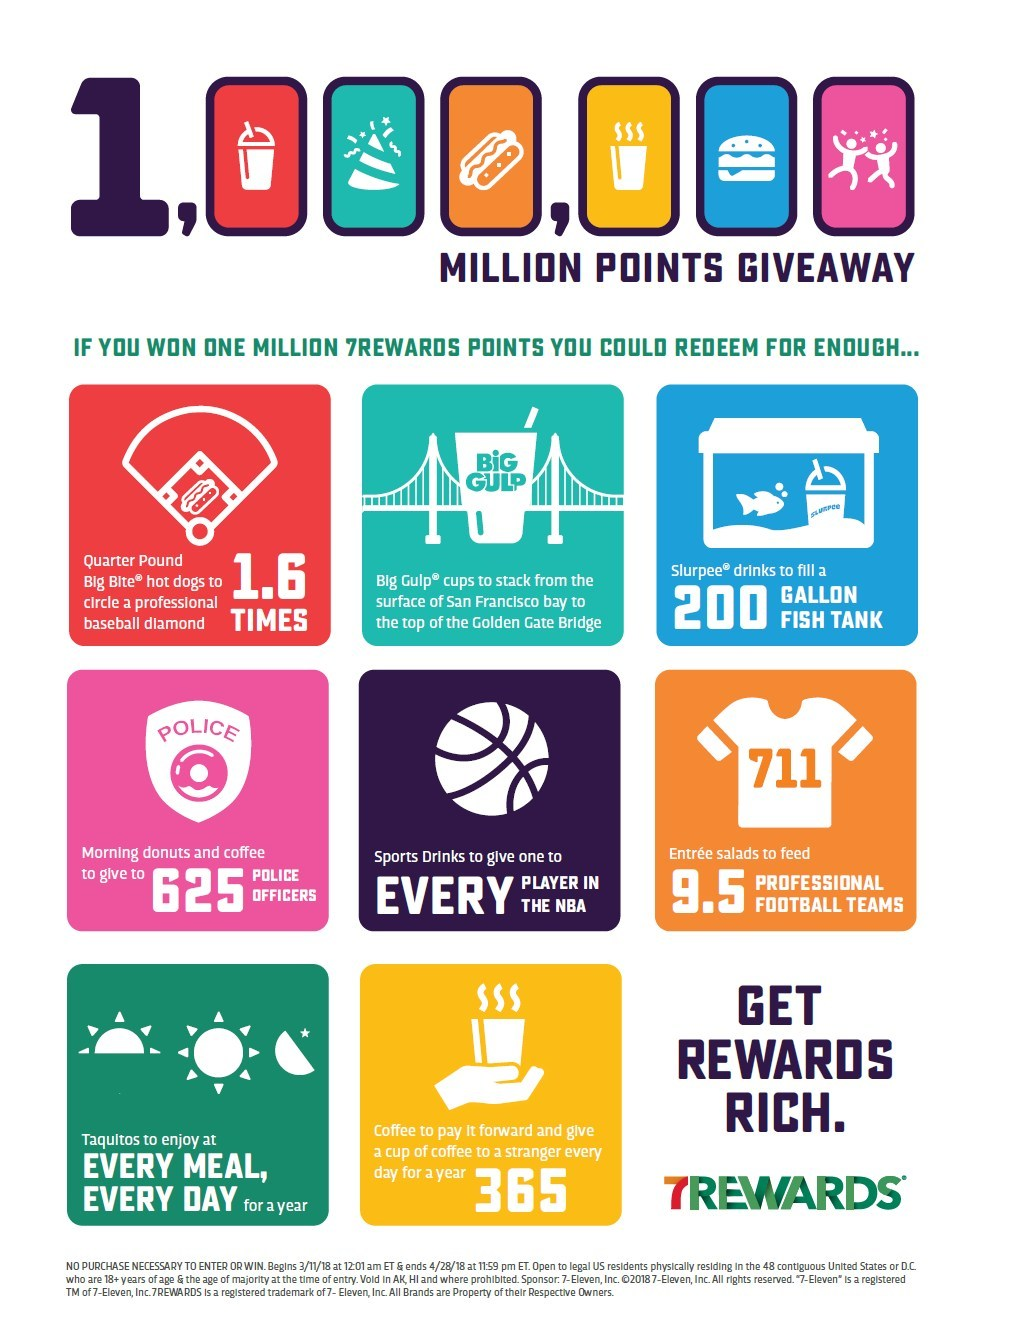 "With the Million Points Giveaway Sweepstakes, hungry and thirsty Americans have more reasons to sign up for the 7-Eleven, Inc. 7Rewards® loyalty program within the 7-Eleven app. That's because seven lucky people will get ""rewards rich"" by winning 1 MILLION 7REWARDS POINTS each, redeemable to buy top-selling food and drinks at participating 7-Eleven® stores. The sweepstakes runs through April 28, 2018, with winners drawn weekly."